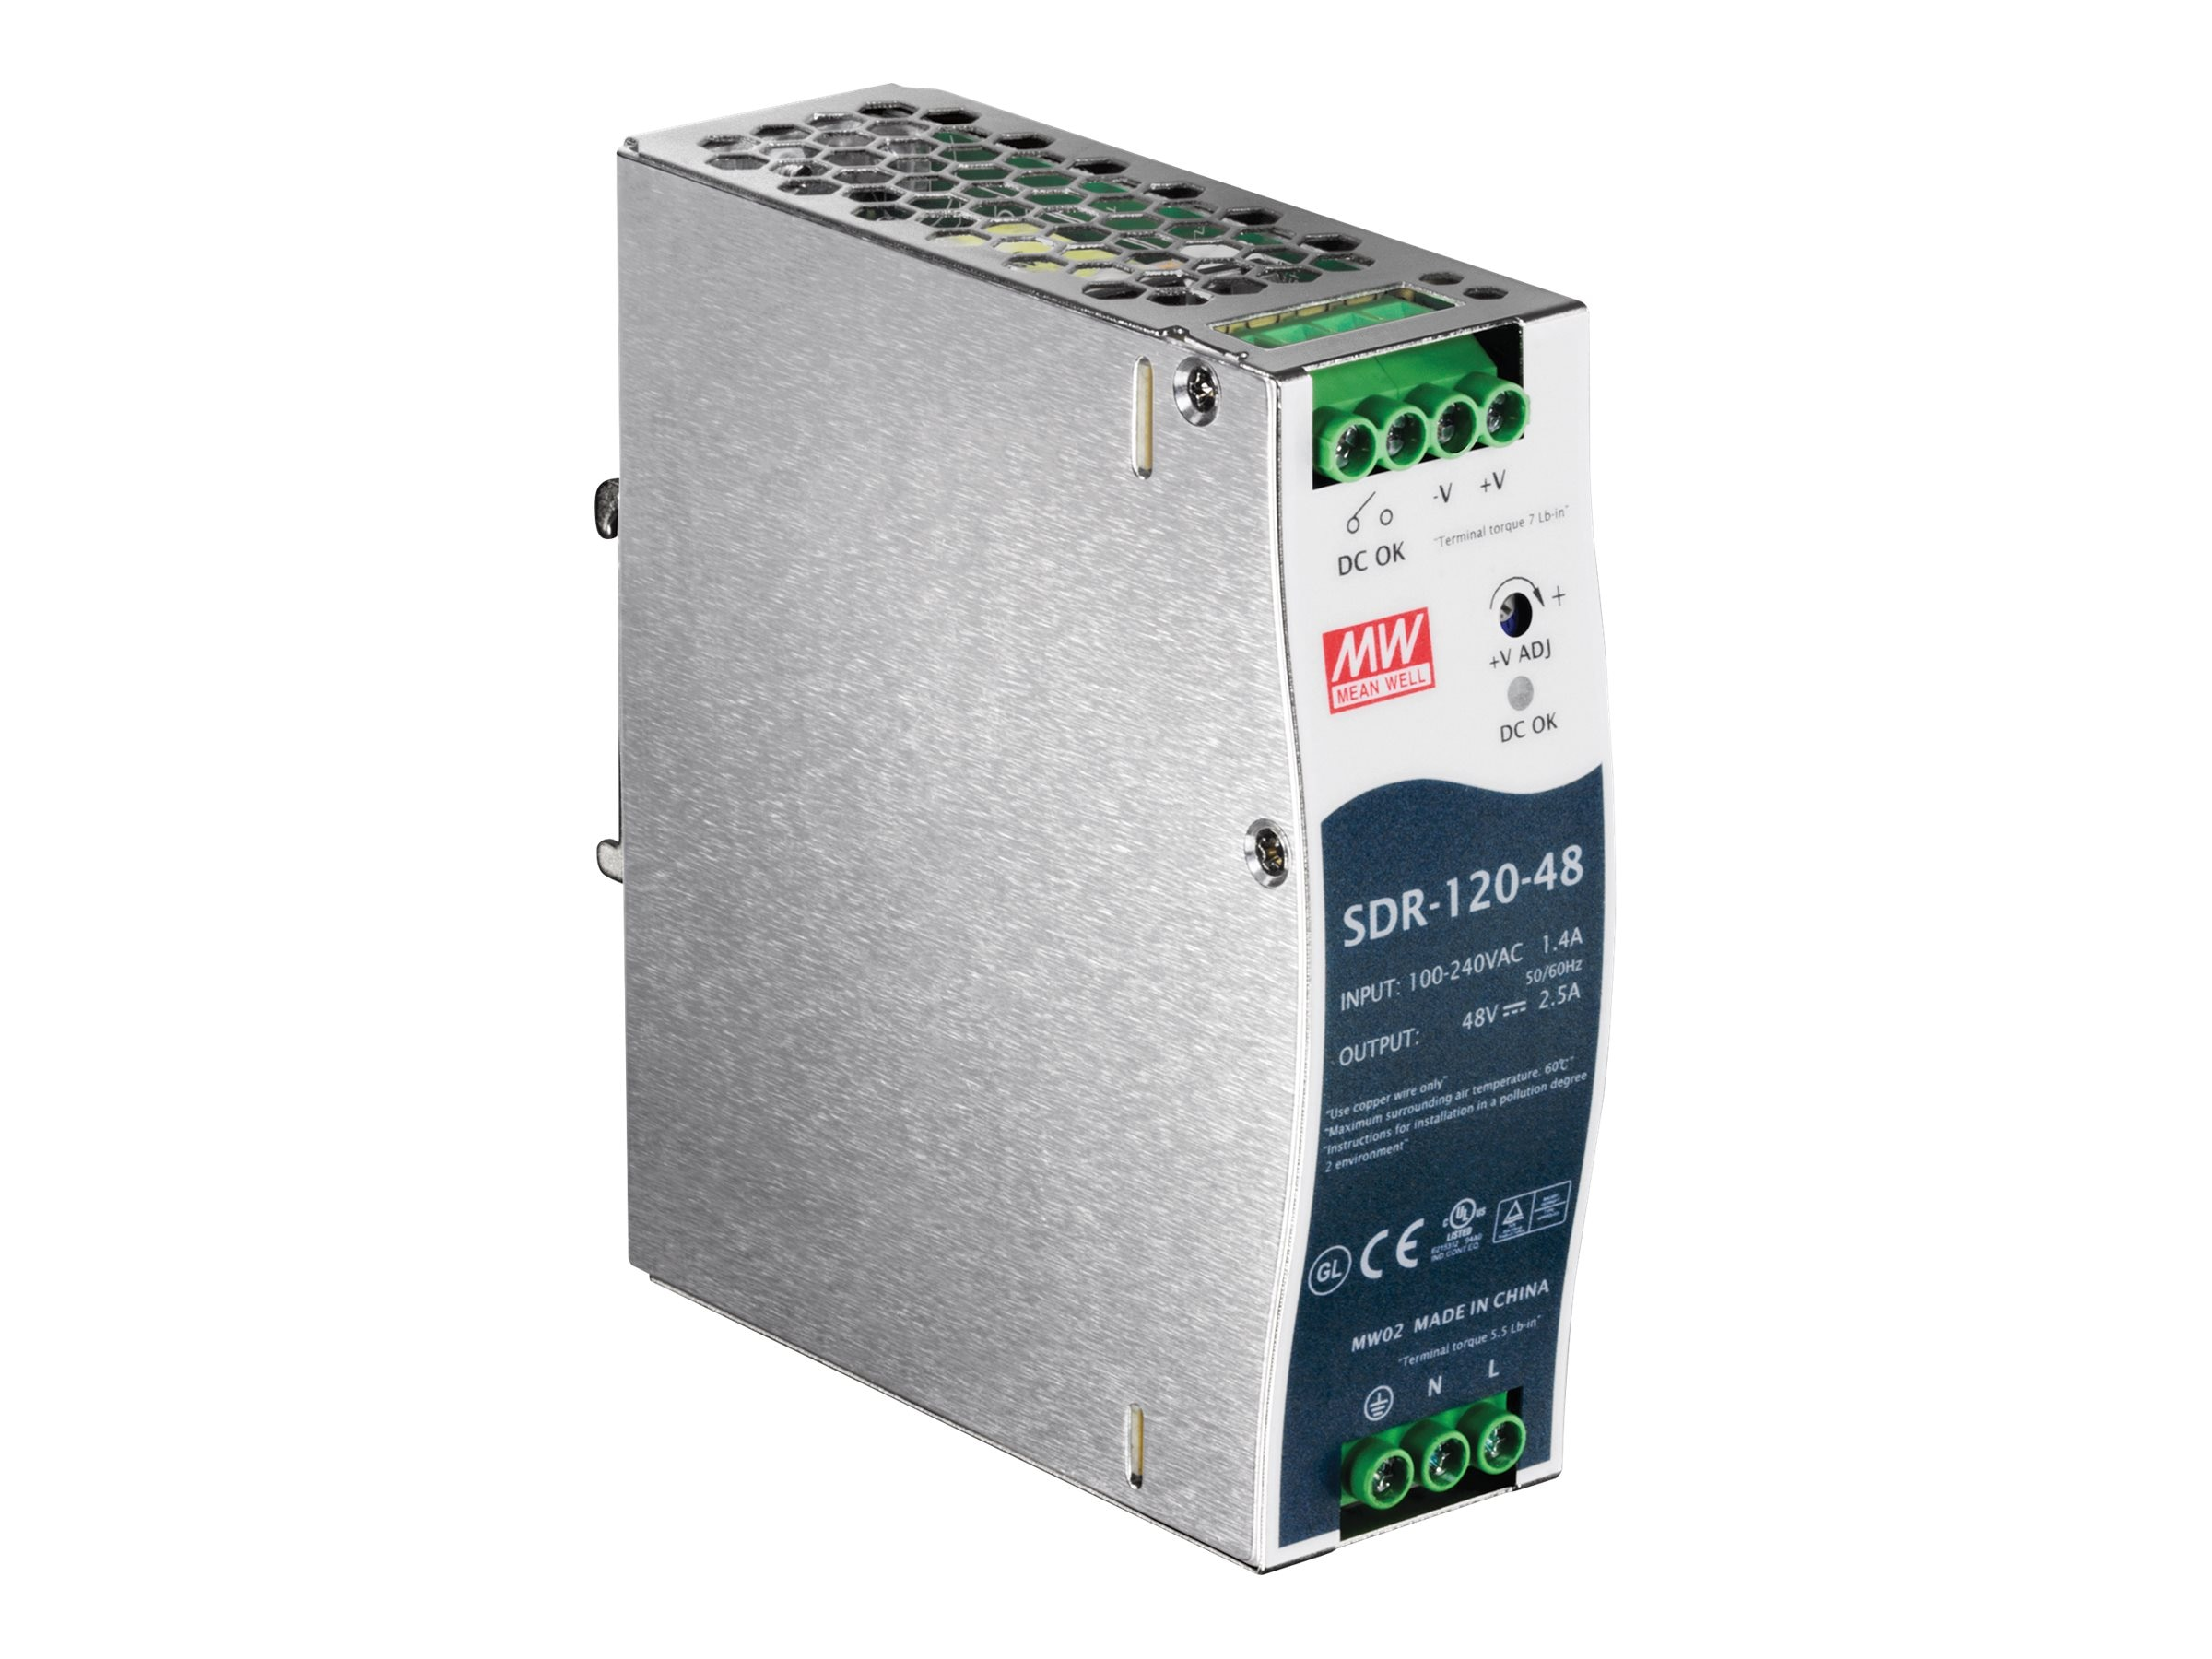 TRENDnet 120W (48V, 2.5A) Single Output Industrial DIN-Rail Power Supply, TI-S12048